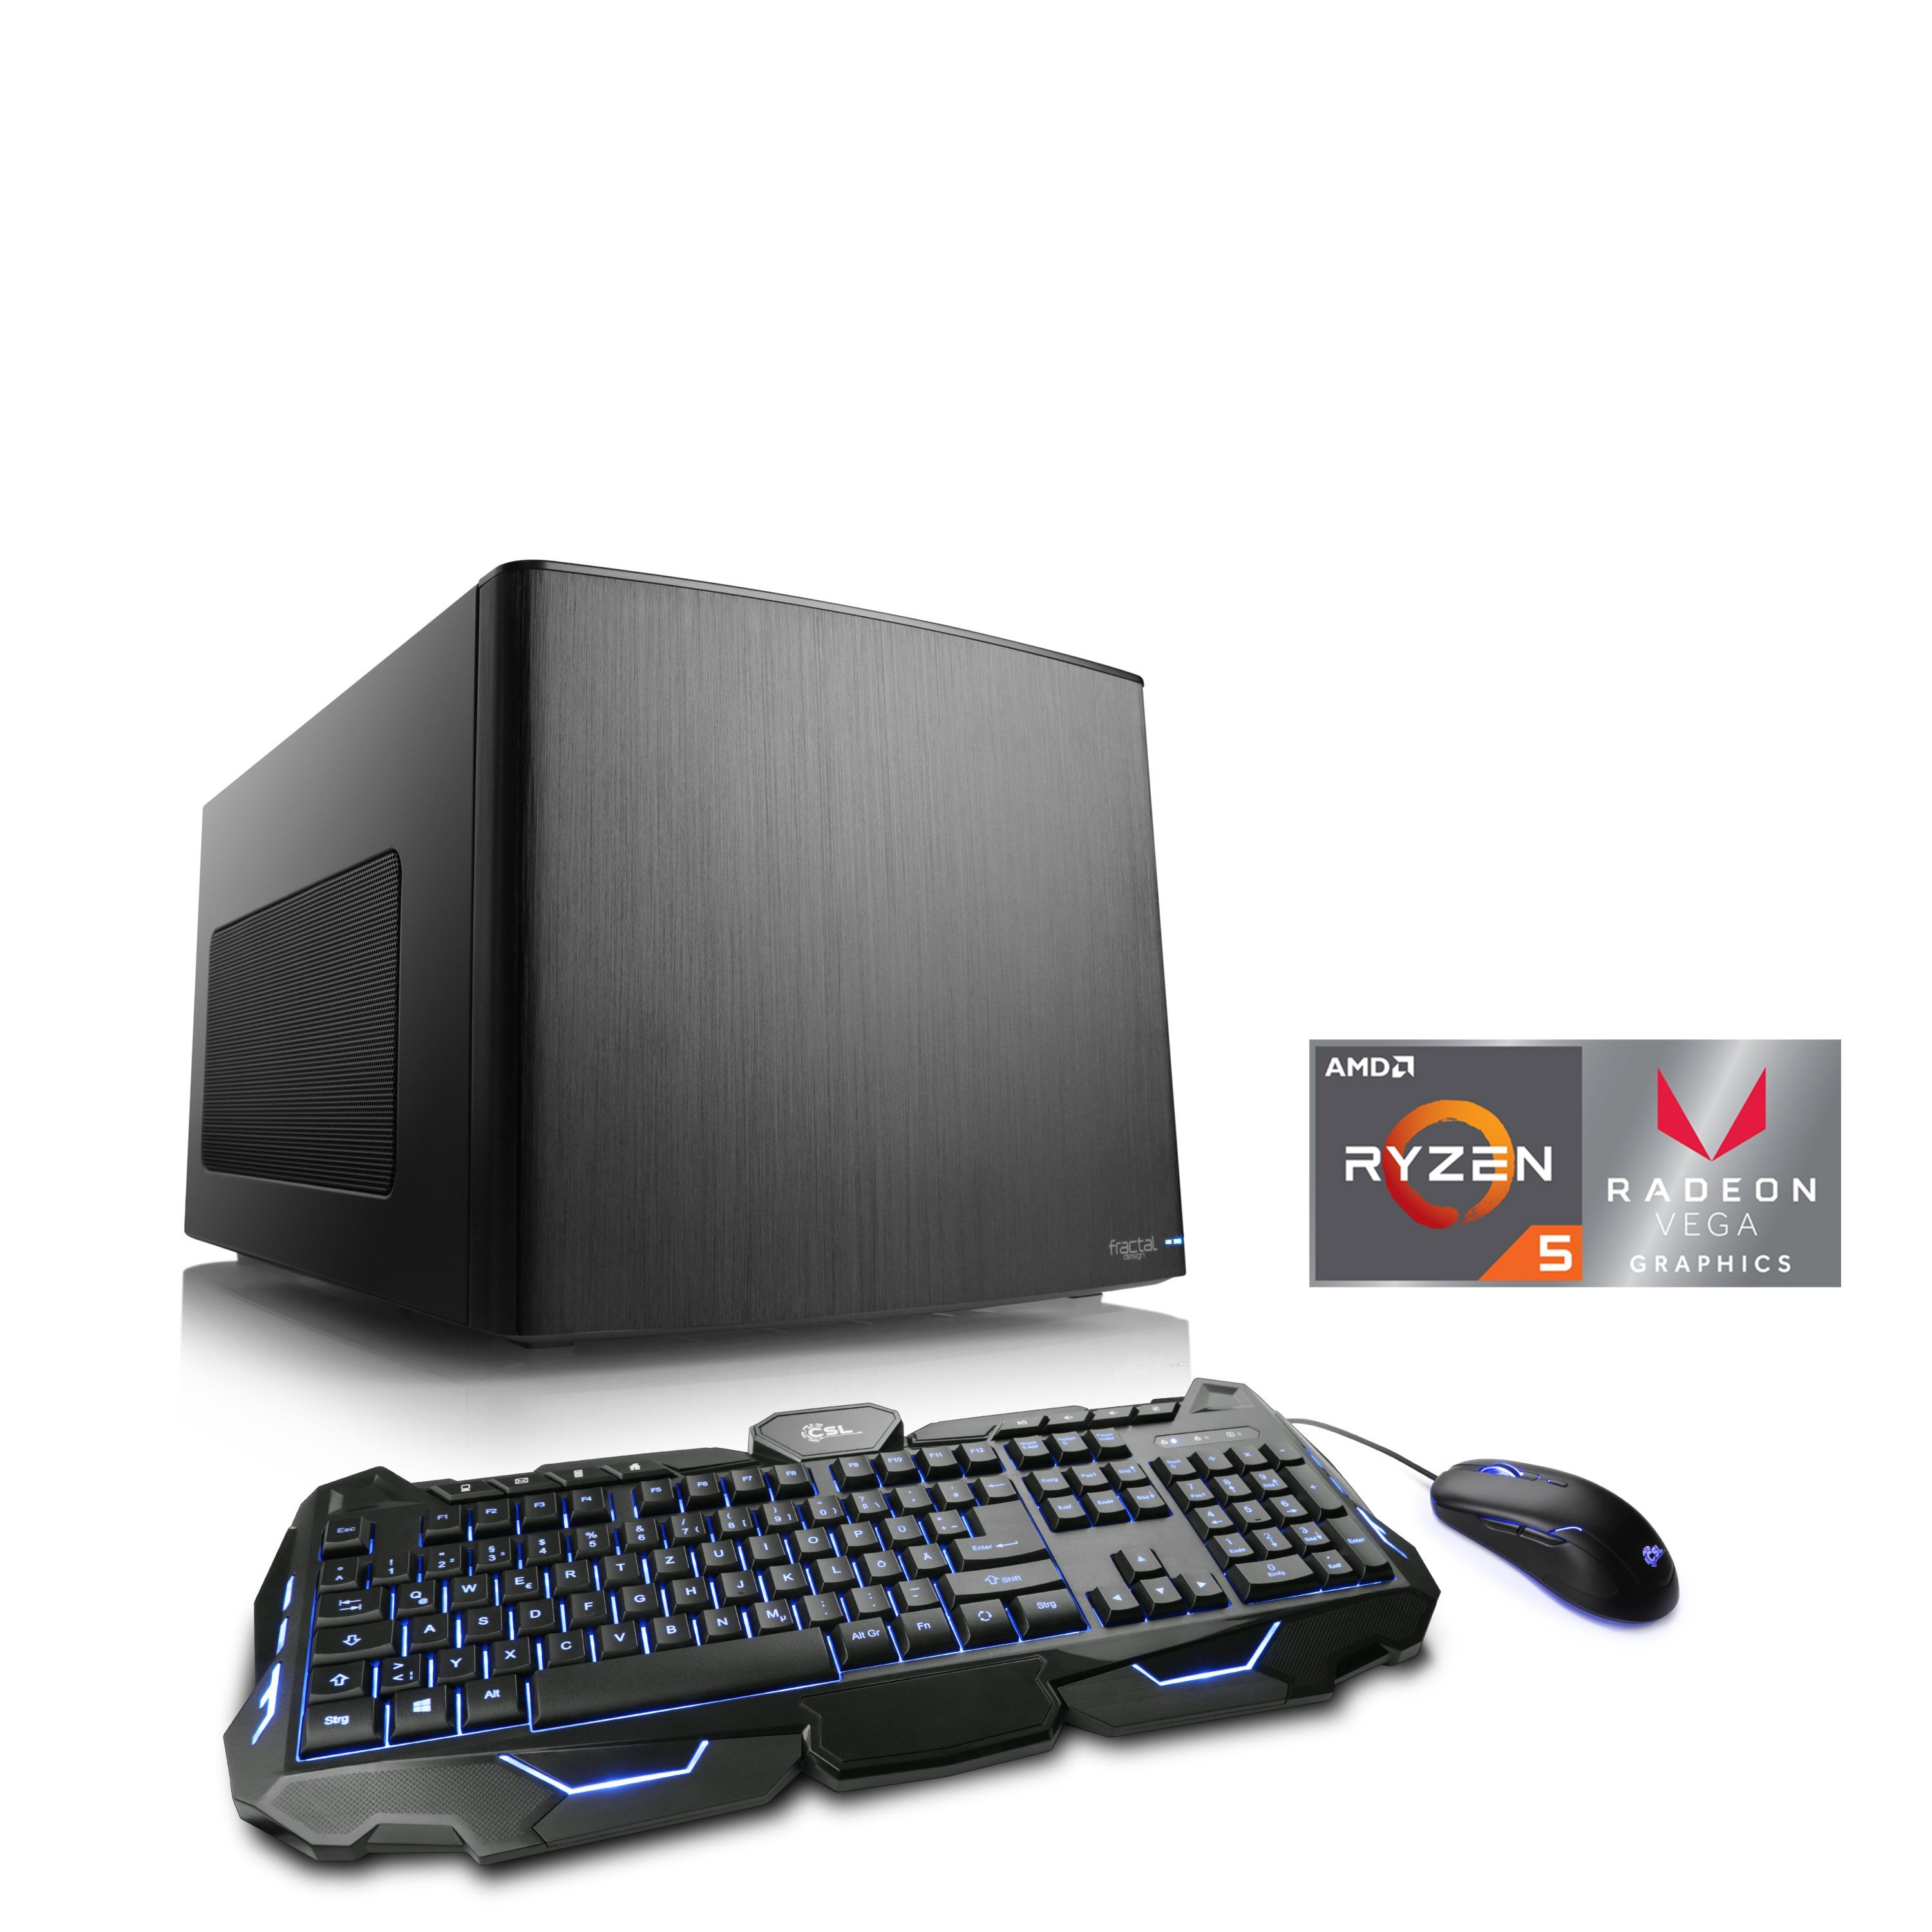 CSL Mini-ITX PC | Ryzen 5 2400G |Vega 11 | 16 GB DDR4 | SSD »Gaming Box T8588 Windows 10«